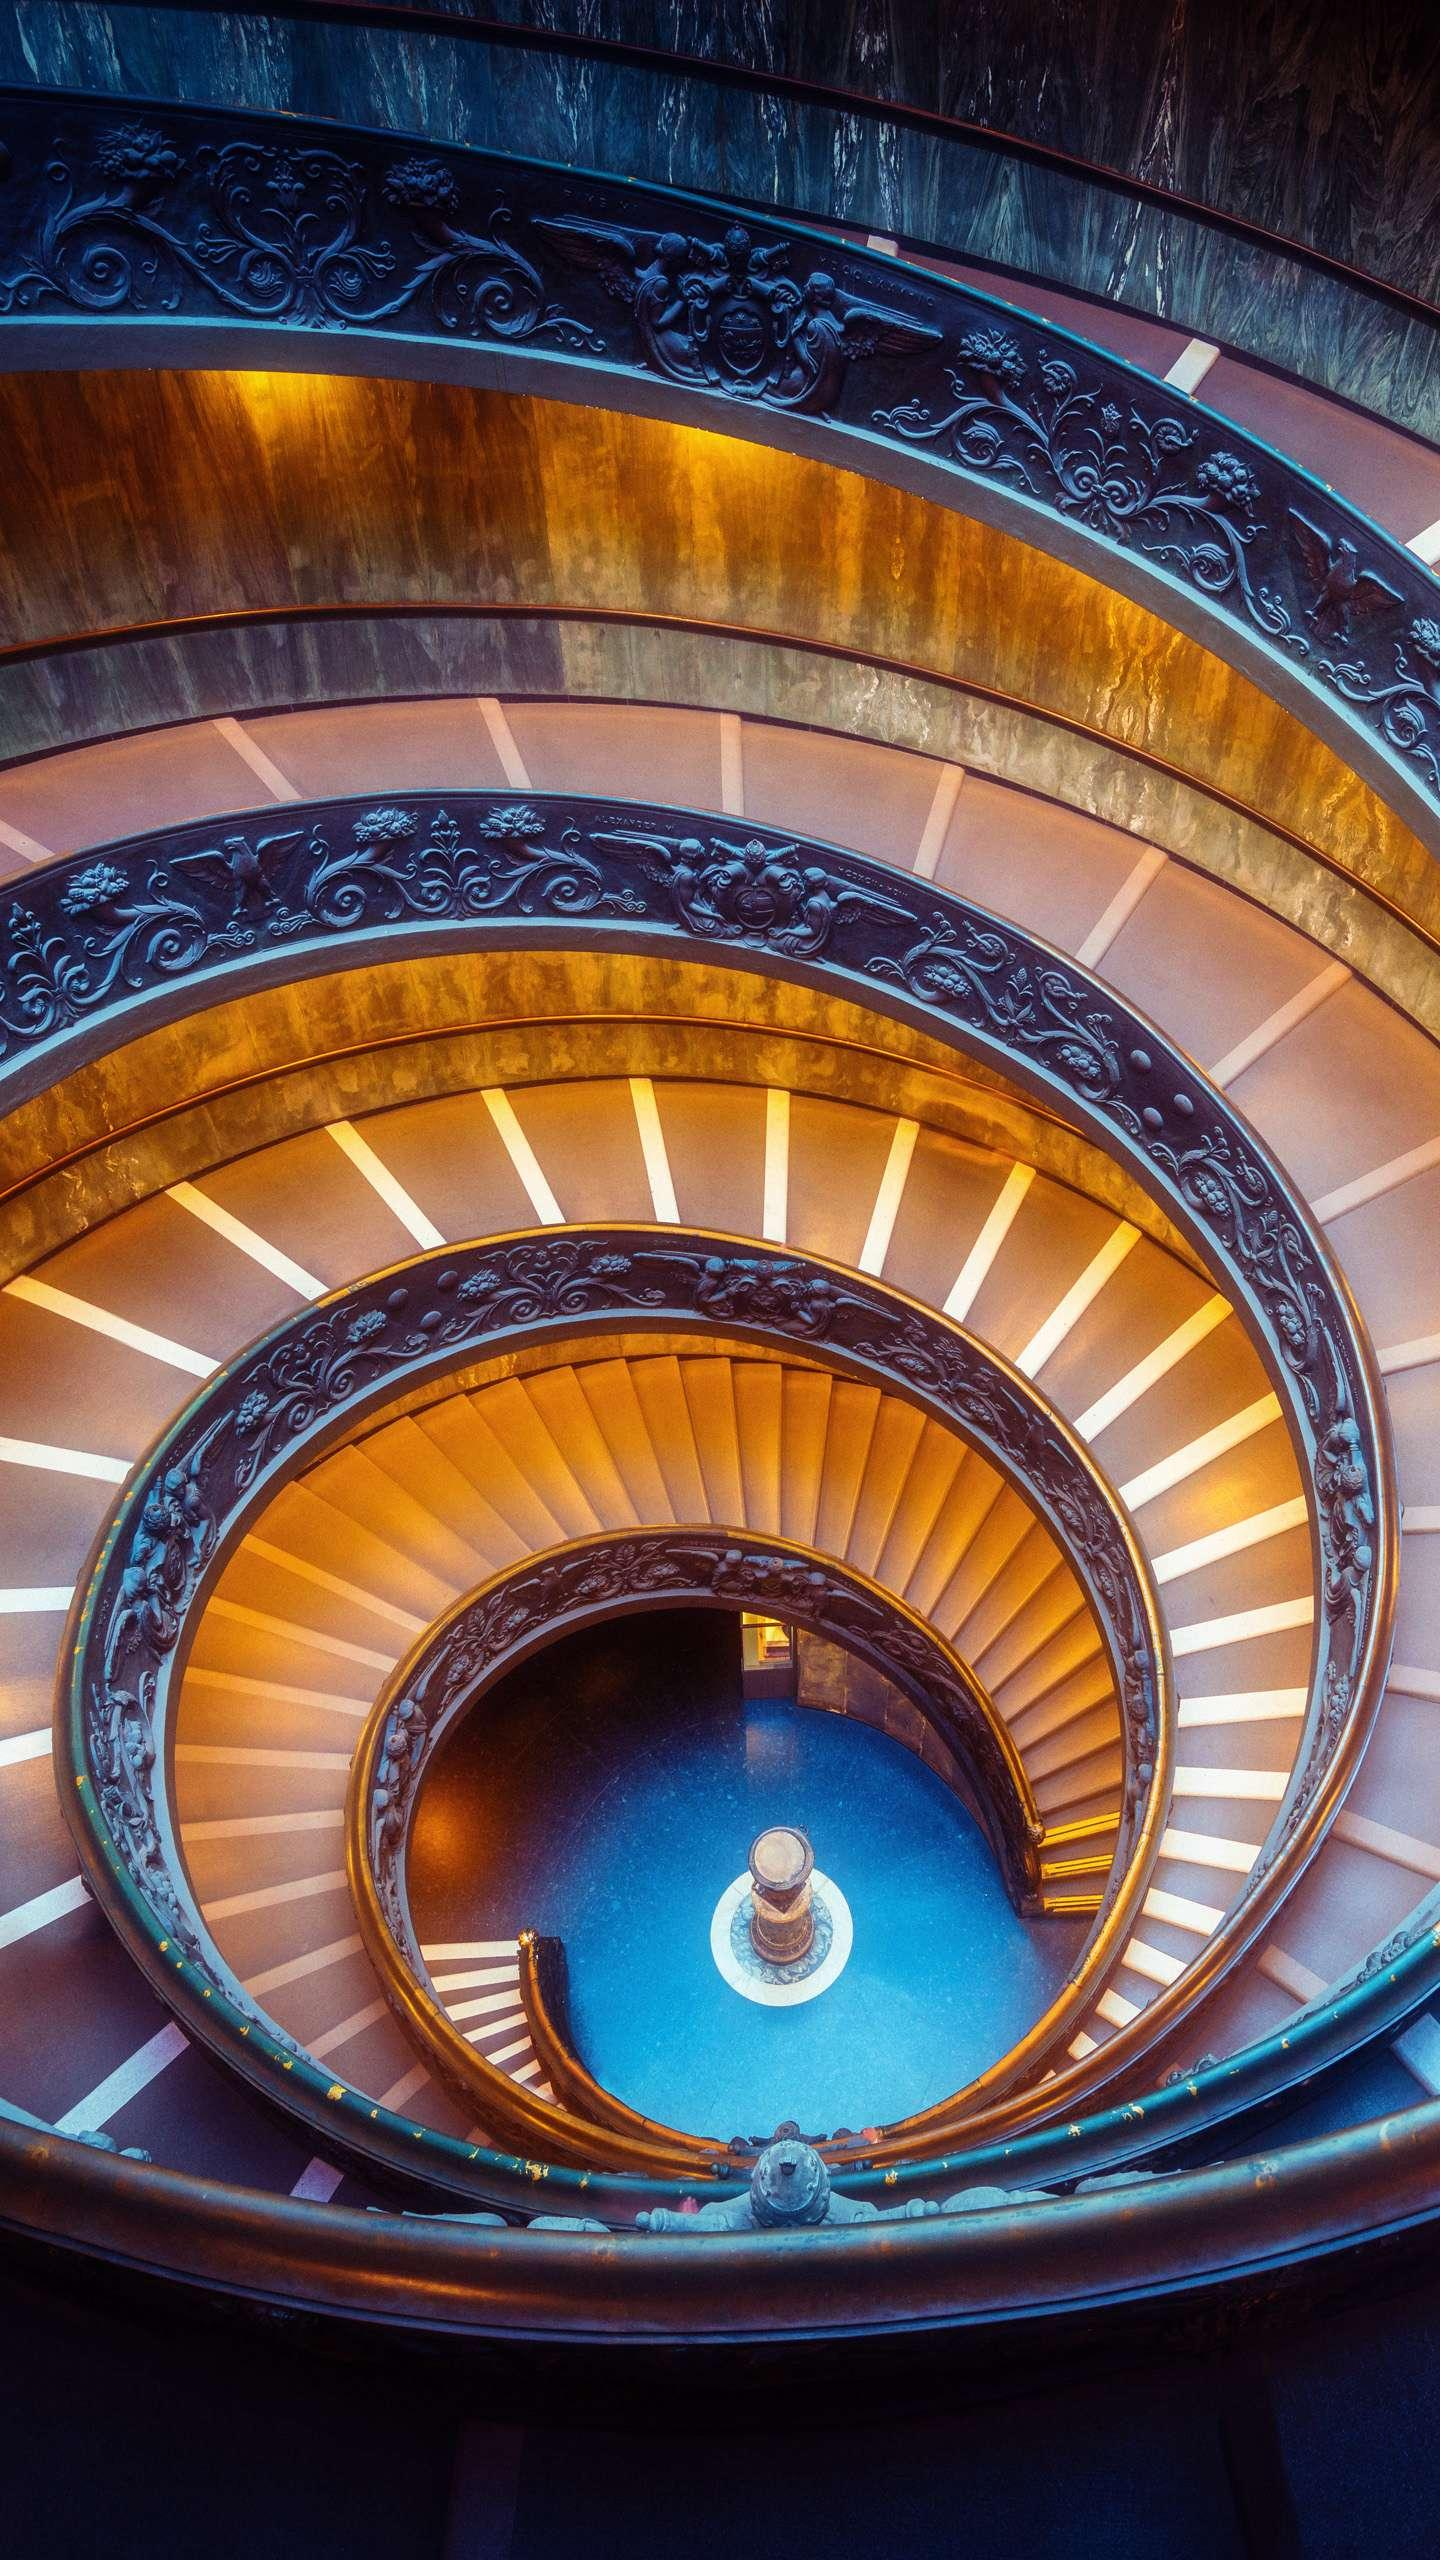 Vatican Museums. One of the world's greatest museums, based on art collections, is mostly the essence of art left behind during the Renaissance.